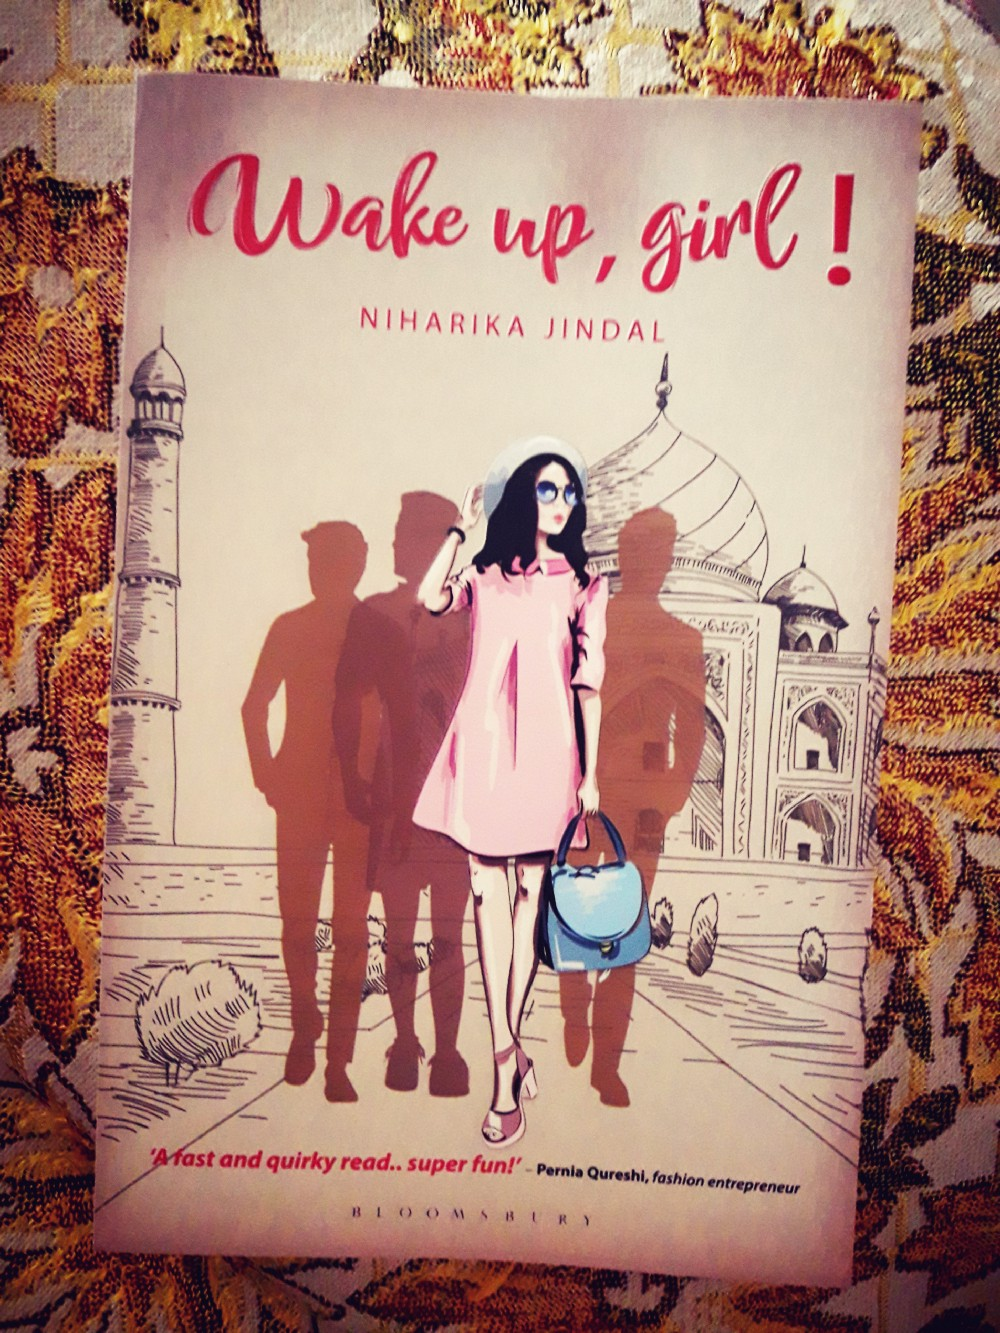 Book Review — Wake up, girl! by Niharika Jindal